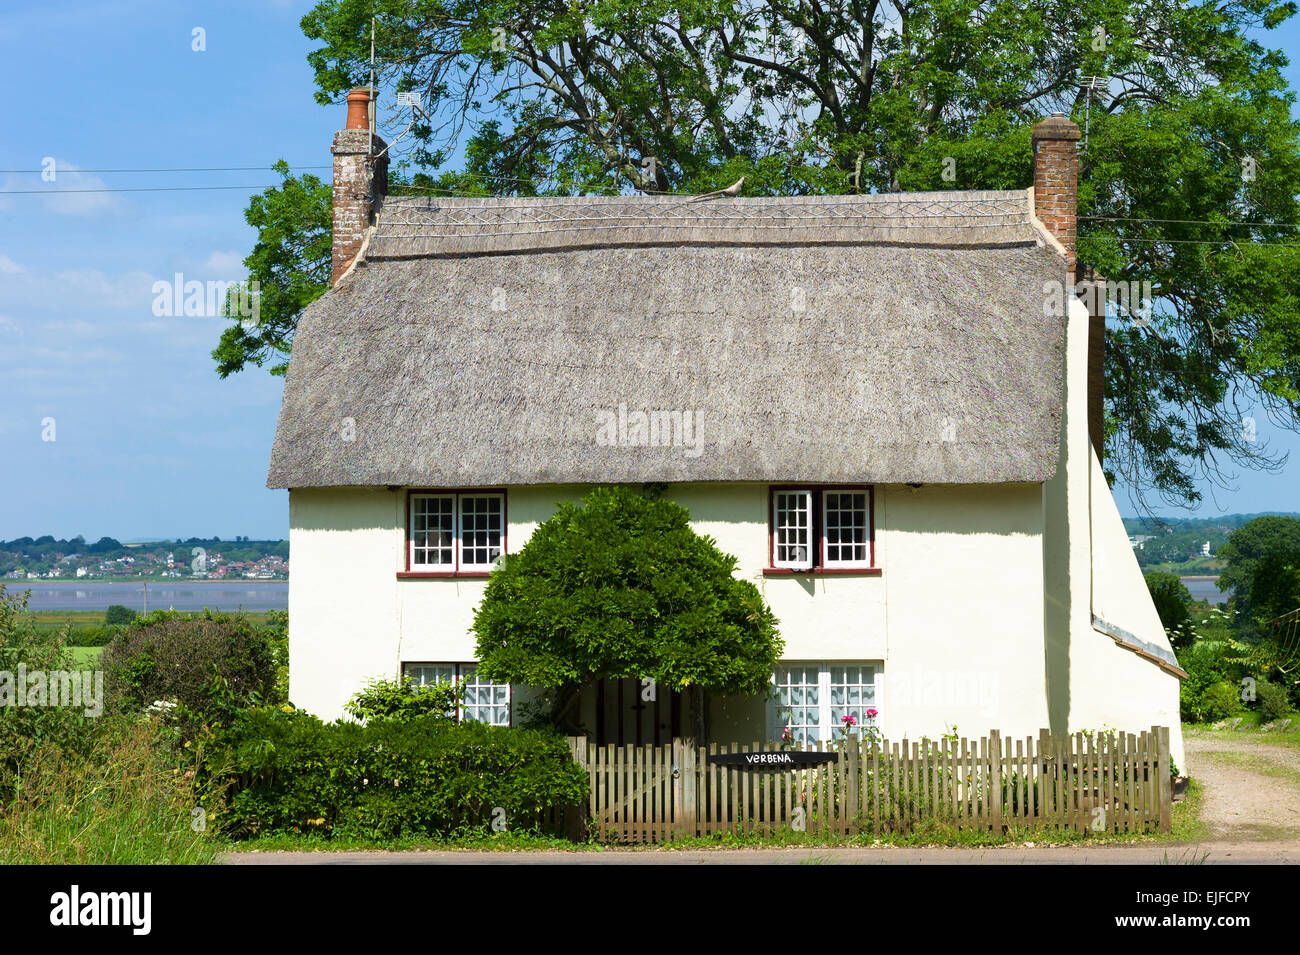 Typical quaint country cottage home at Powderham in South Devon, England, UK - Stock Image